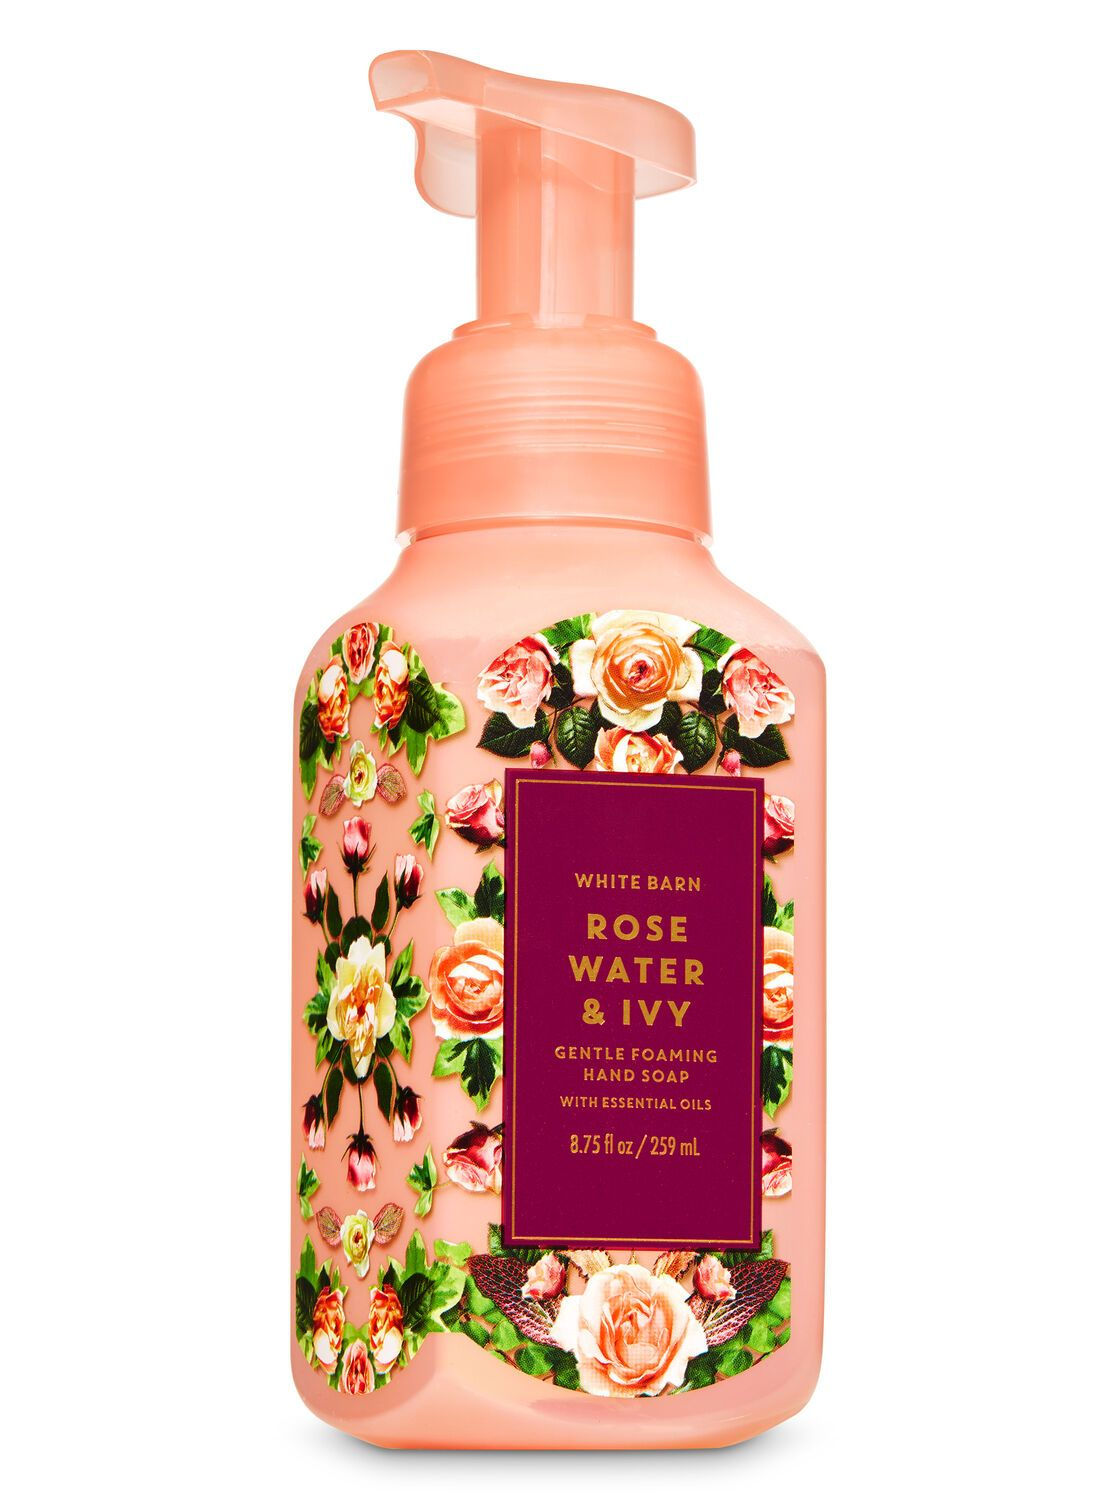 Rose Water Ivy Home Fragrance Set Hand Soap Room Spray